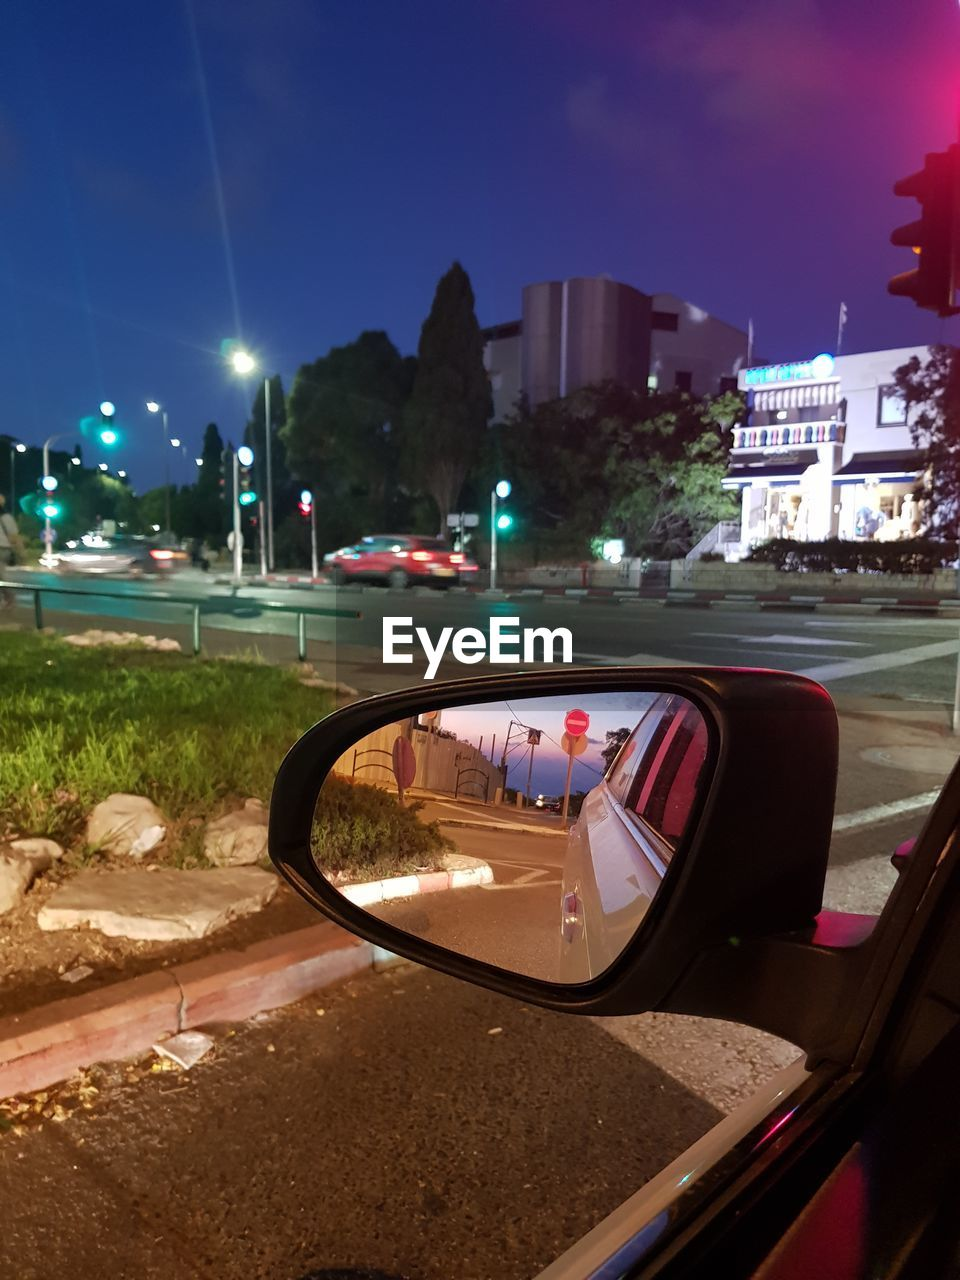 mode of transportation, car, motor vehicle, transportation, city, architecture, building exterior, land vehicle, built structure, reflection, sky, nature, street, road, no people, side-view mirror, illuminated, outdoors, tree, night, vehicle mirror